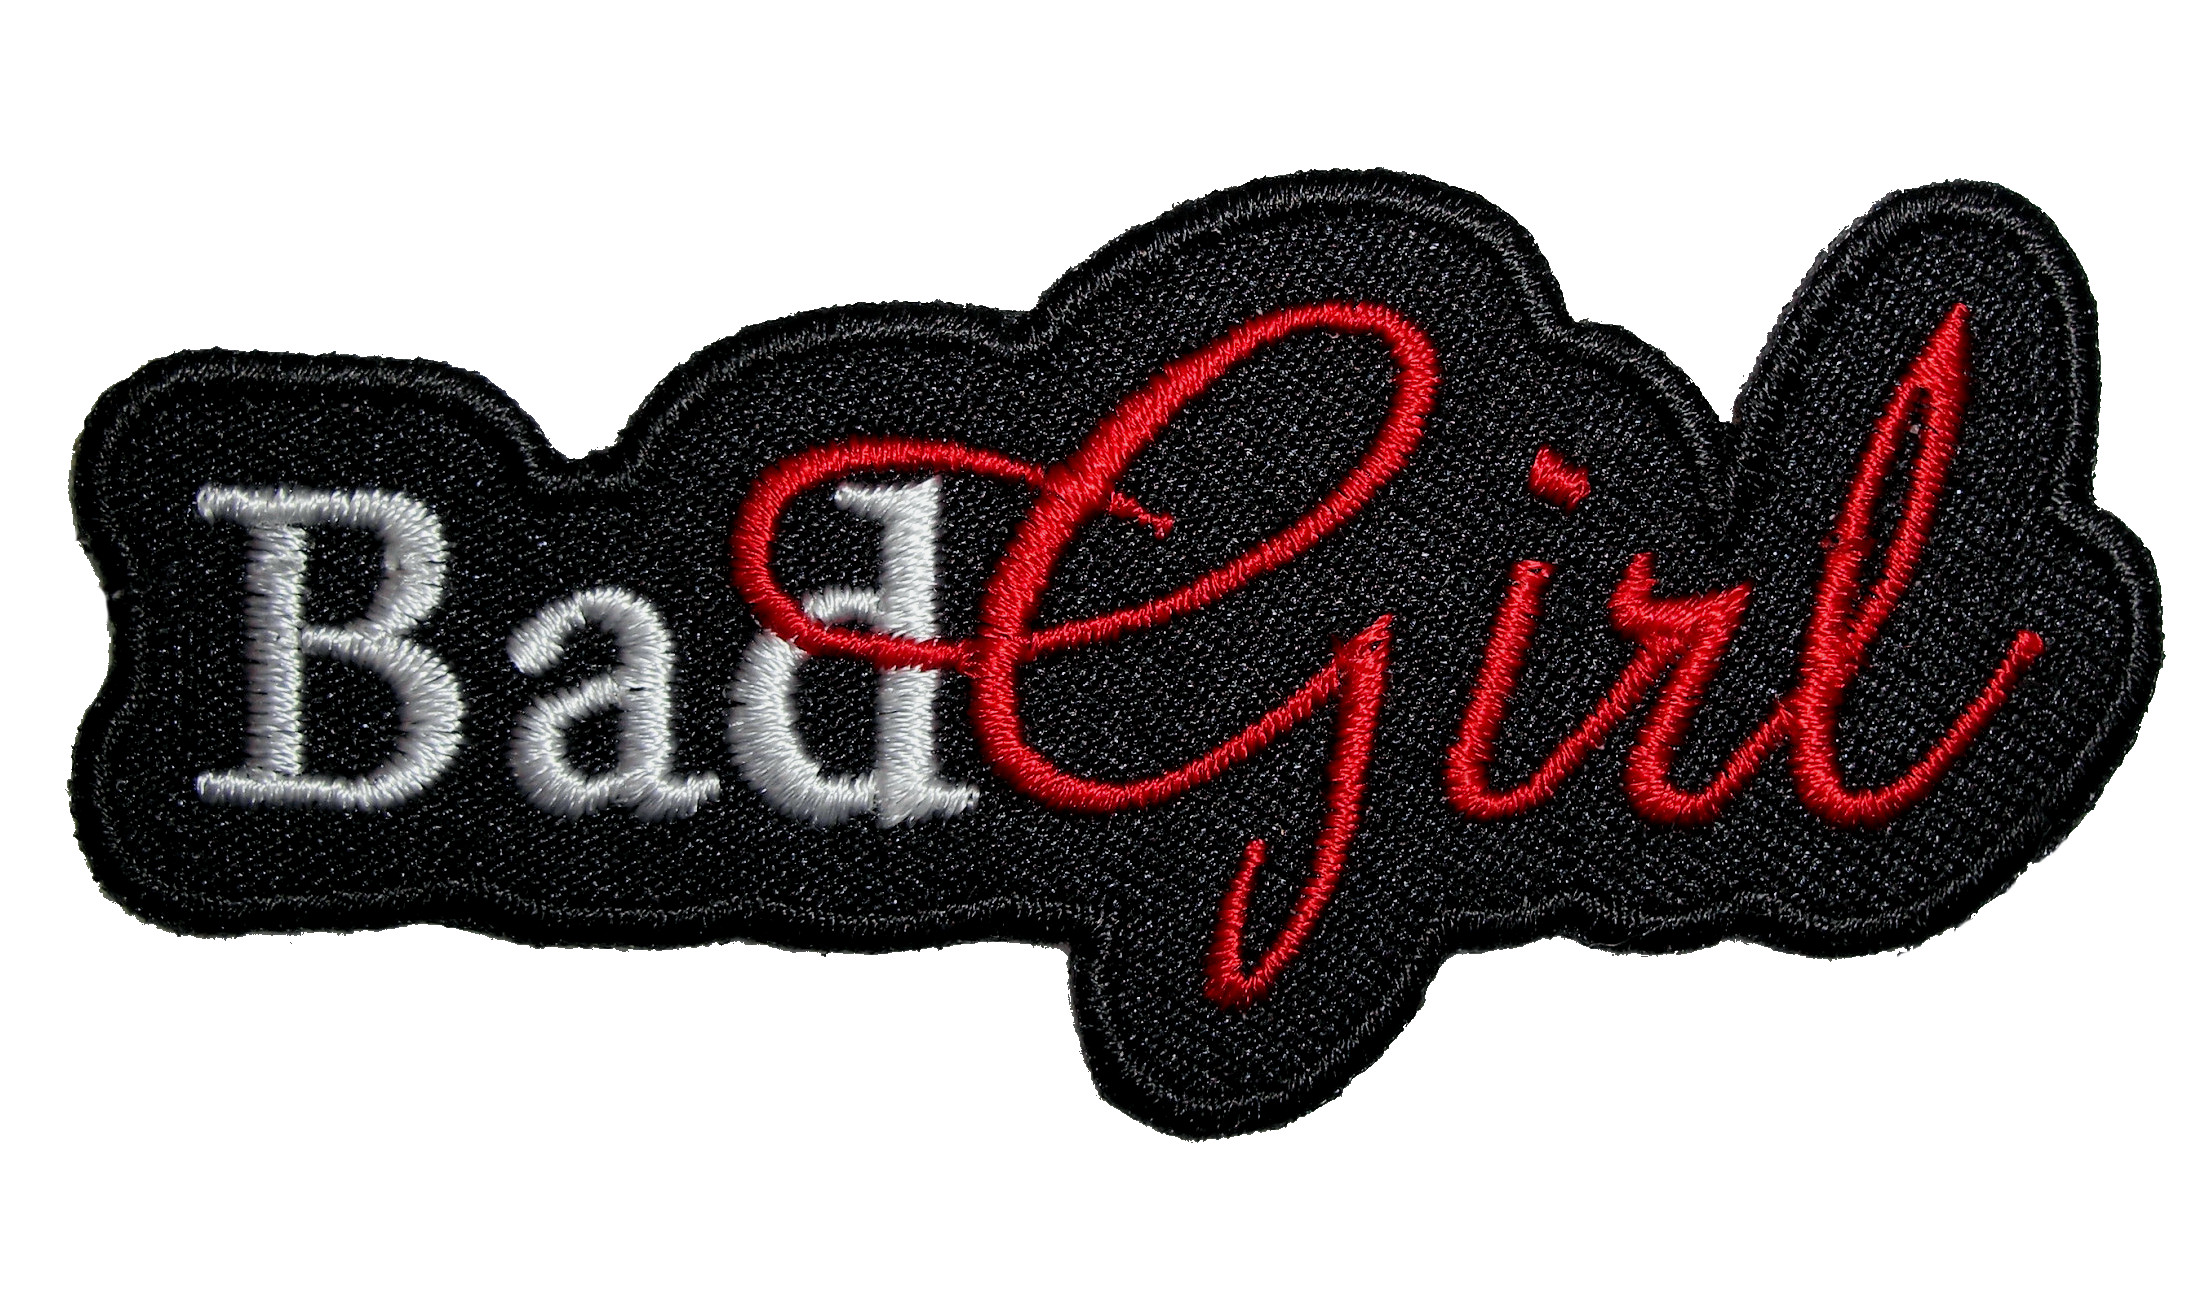 Sexy Bad Girl Saying Lady Rider Biker Patch FREE SHIP